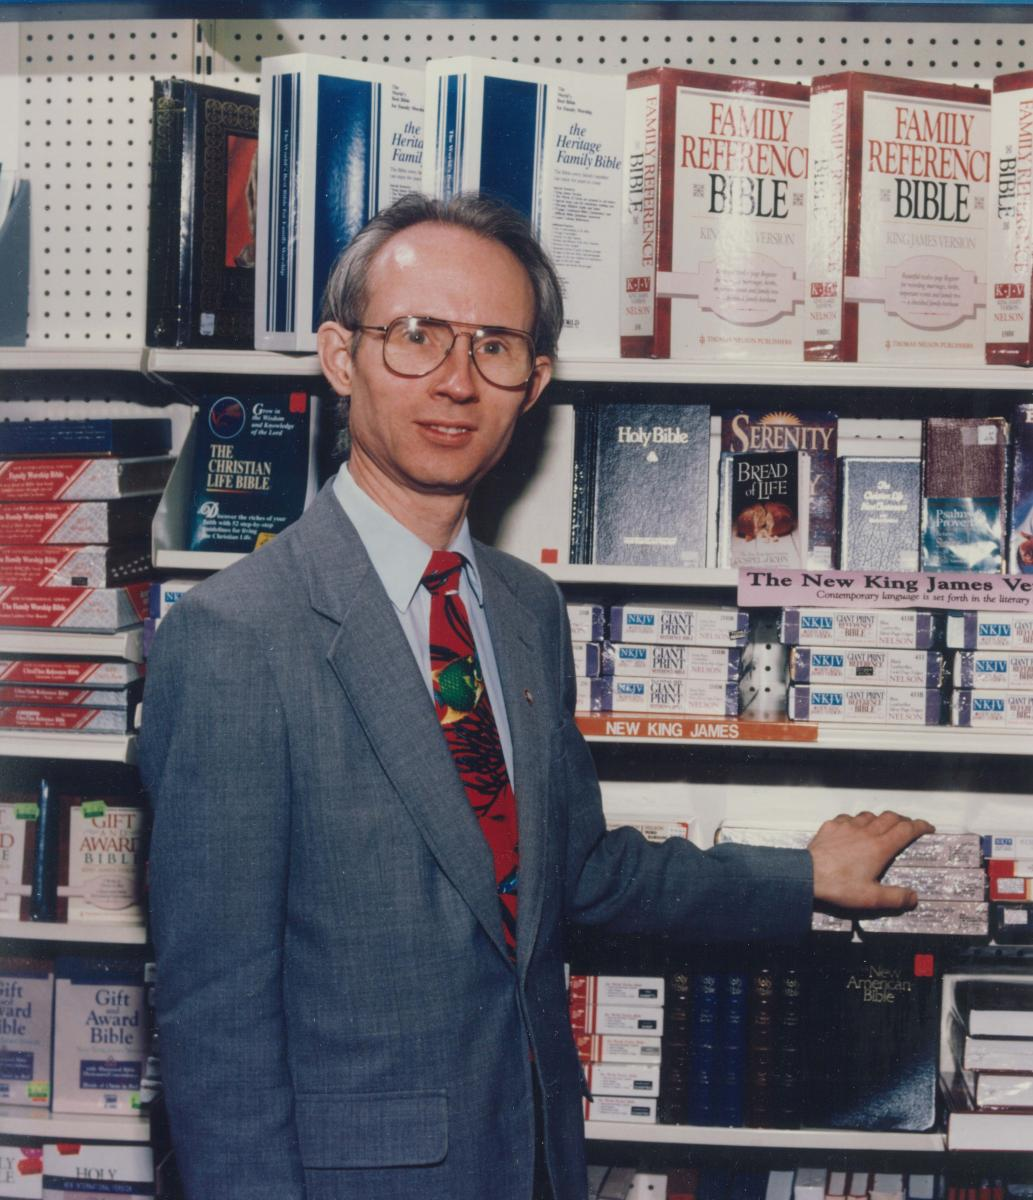 aul Glenn (circa 1990) stands by the Bible shelves in the Adventist Book Center's prior location in Takoma Park, Md.